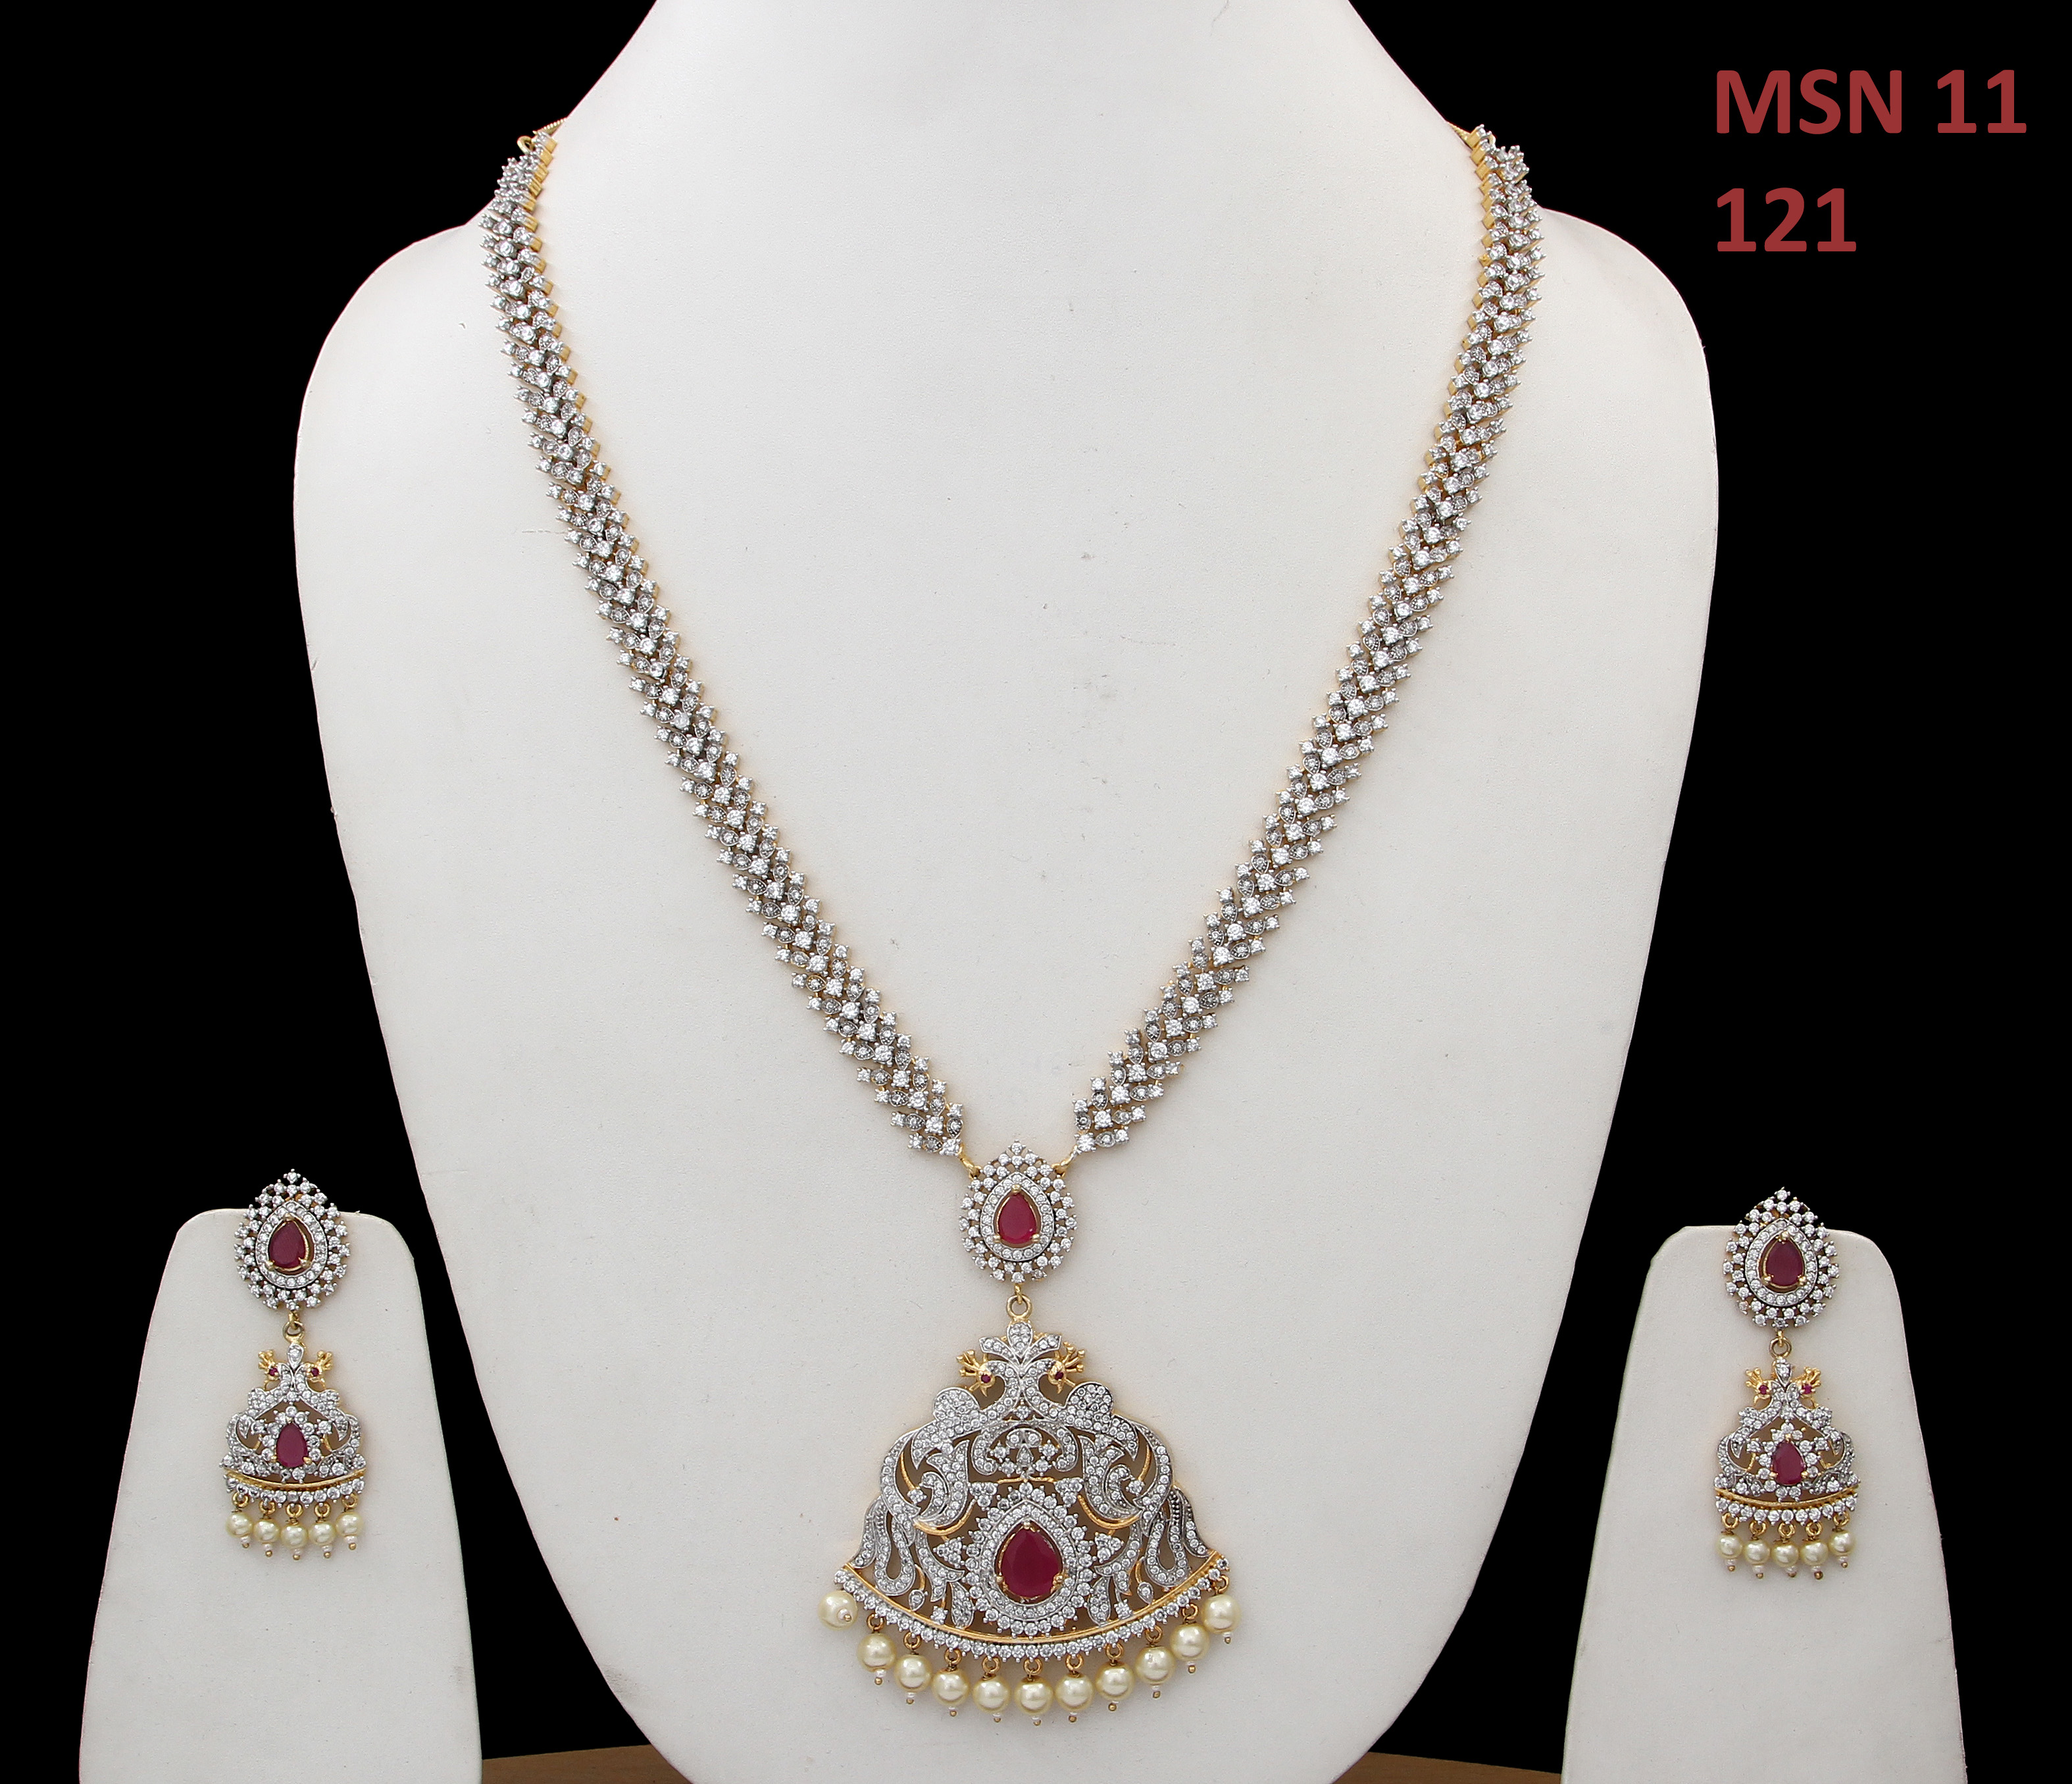 55Carat   55Carat Maharani Fashion Necklace with drop Earring For Women Girls Ladies Red Onyx Indian Traditional Chokar Set Gold Plated Silver Plated Chain Haar Jewellery for Womens MSN 11-RED